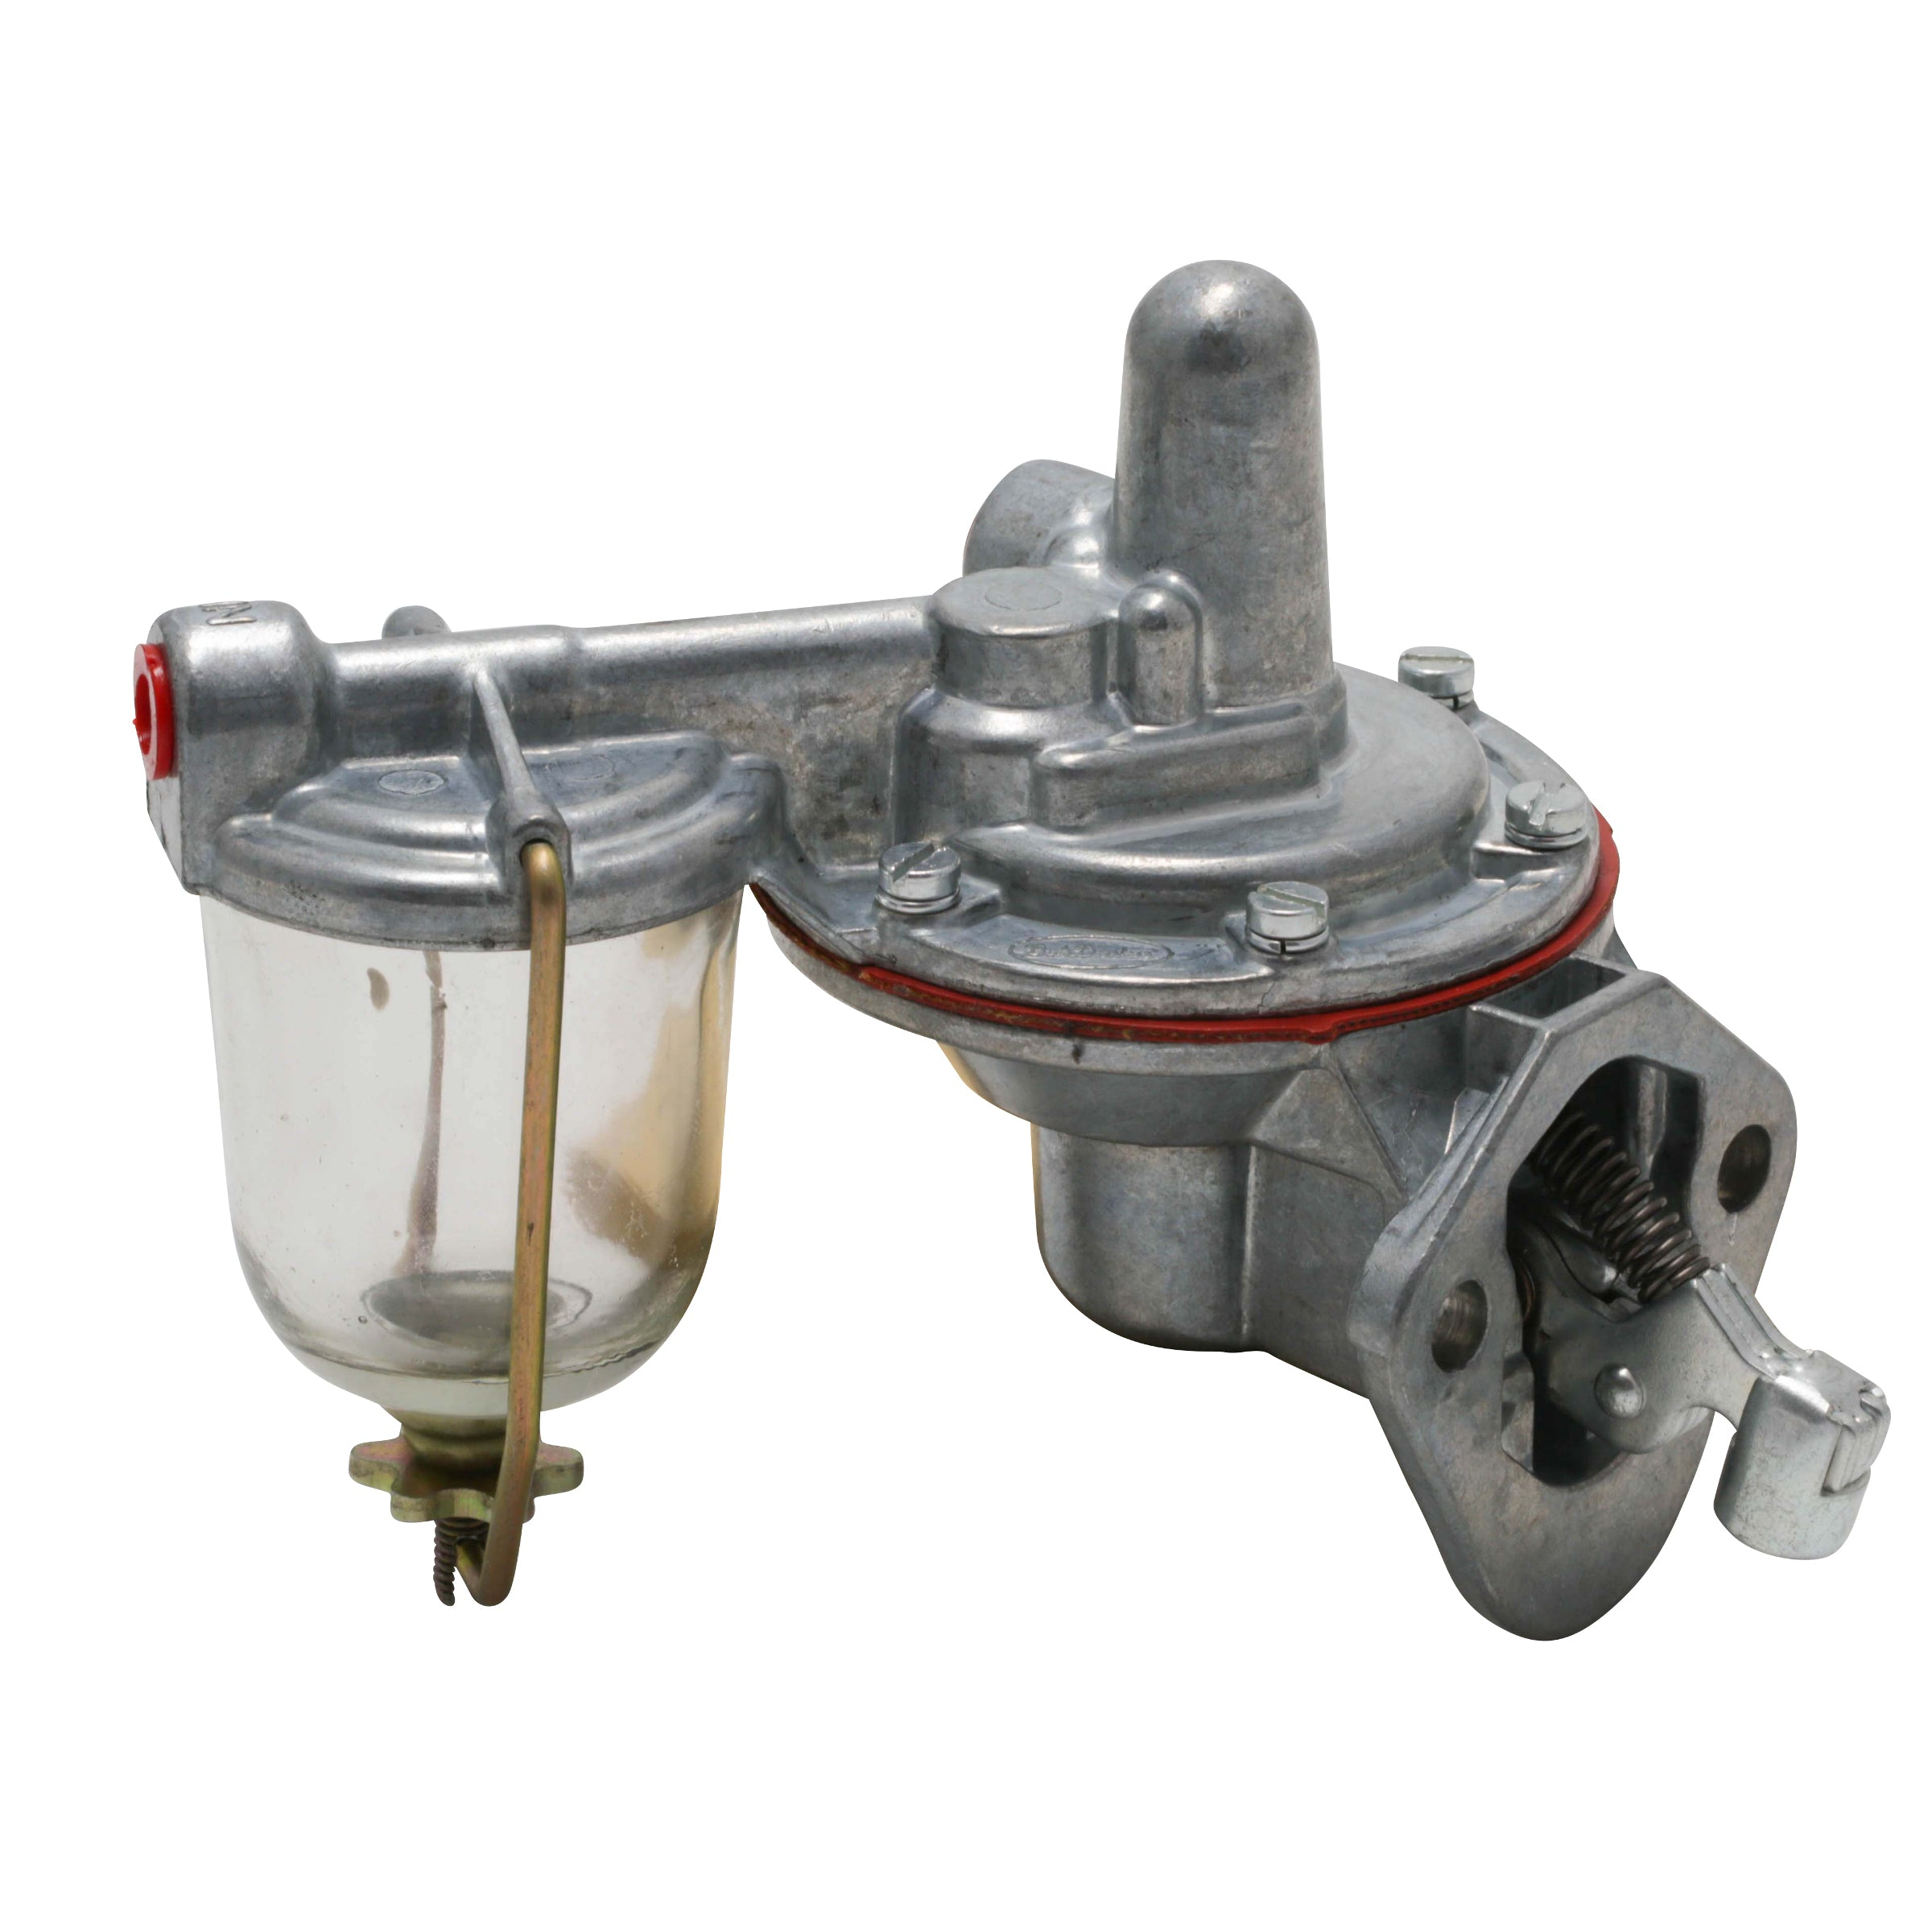 Fuel Pump Assembly (New-Single Action) • 1951-53 Ford